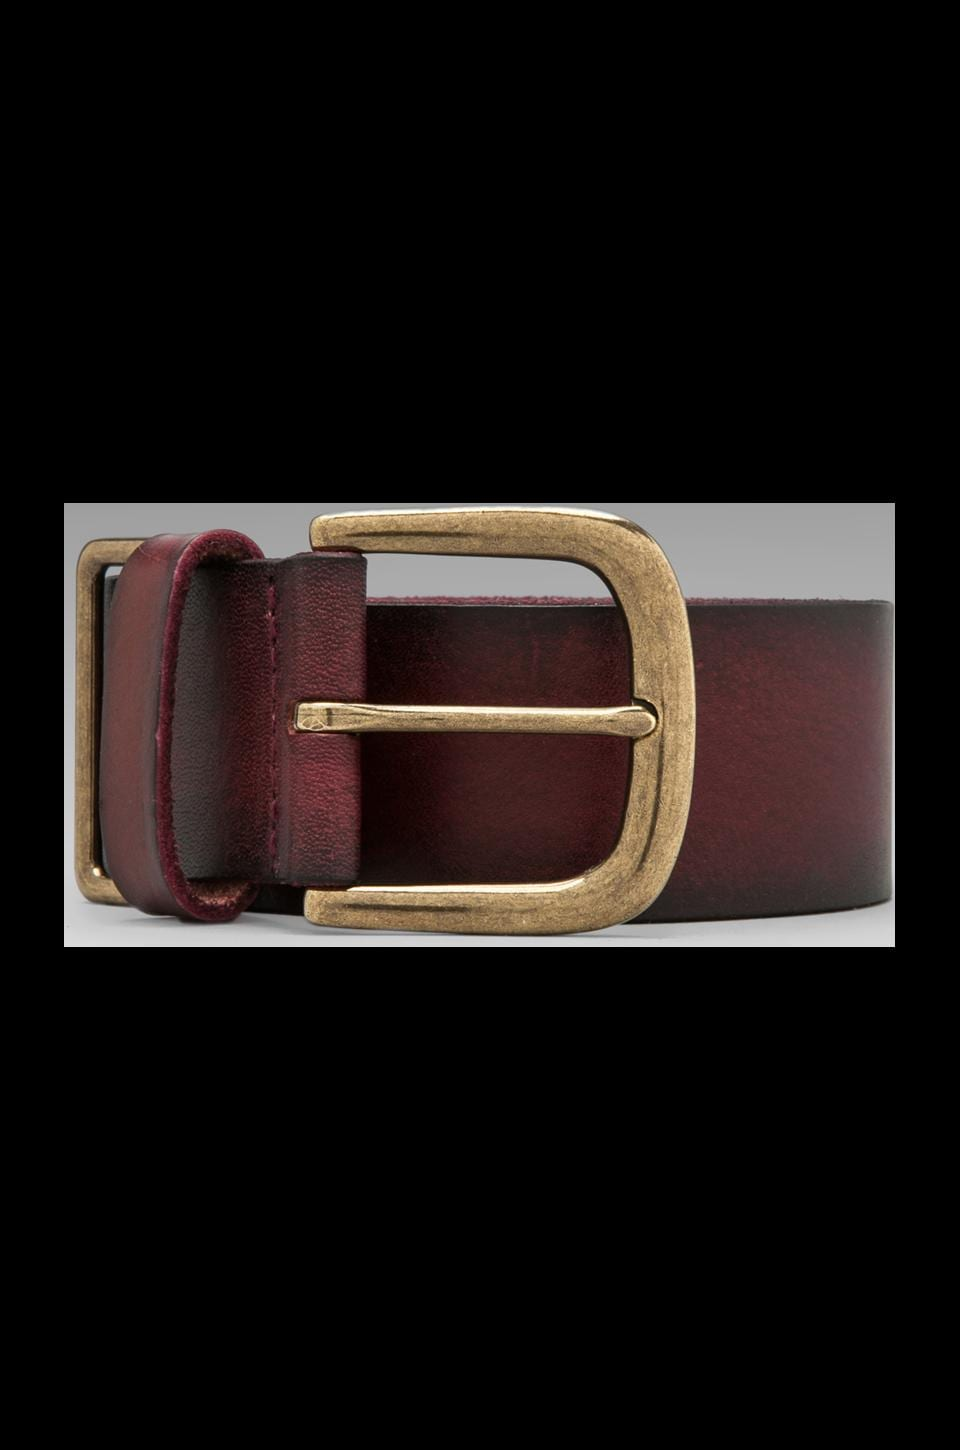 Linea Pelle Sullivan Military Hip w/ Metal Tip in Oxblood